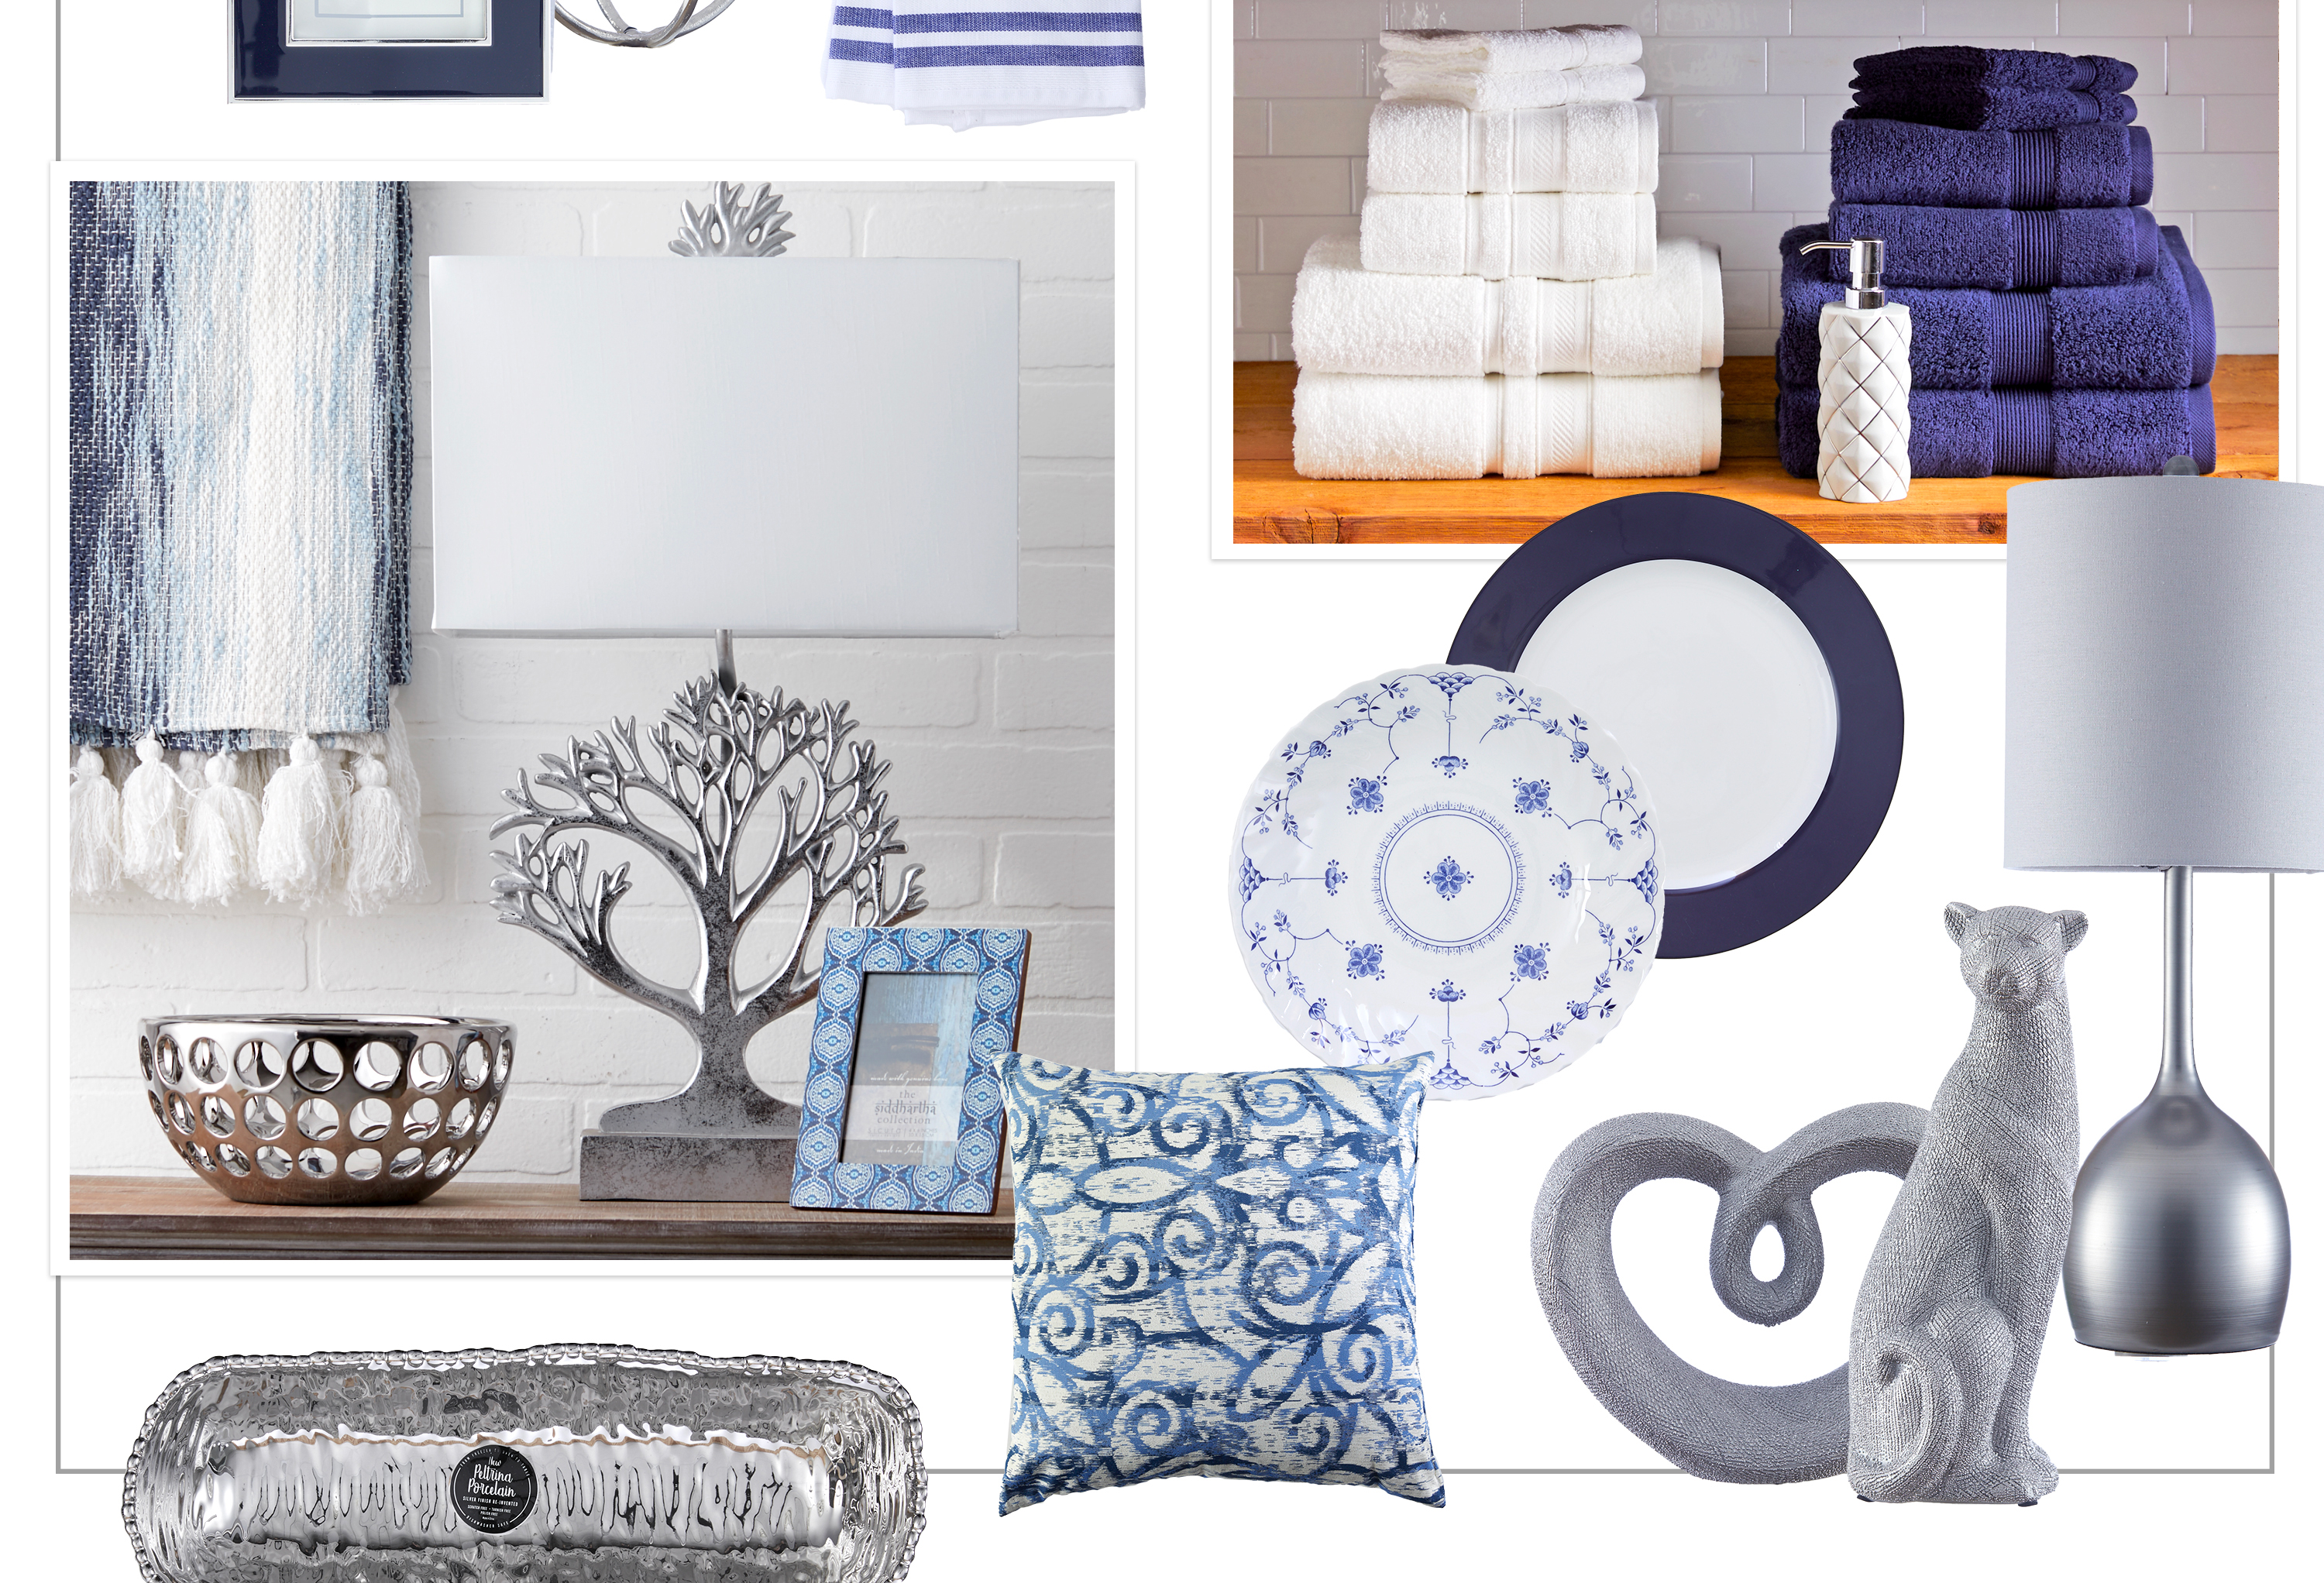 Navy & Platinum - Pair platinum as a sophisticated accent to traditional navy.